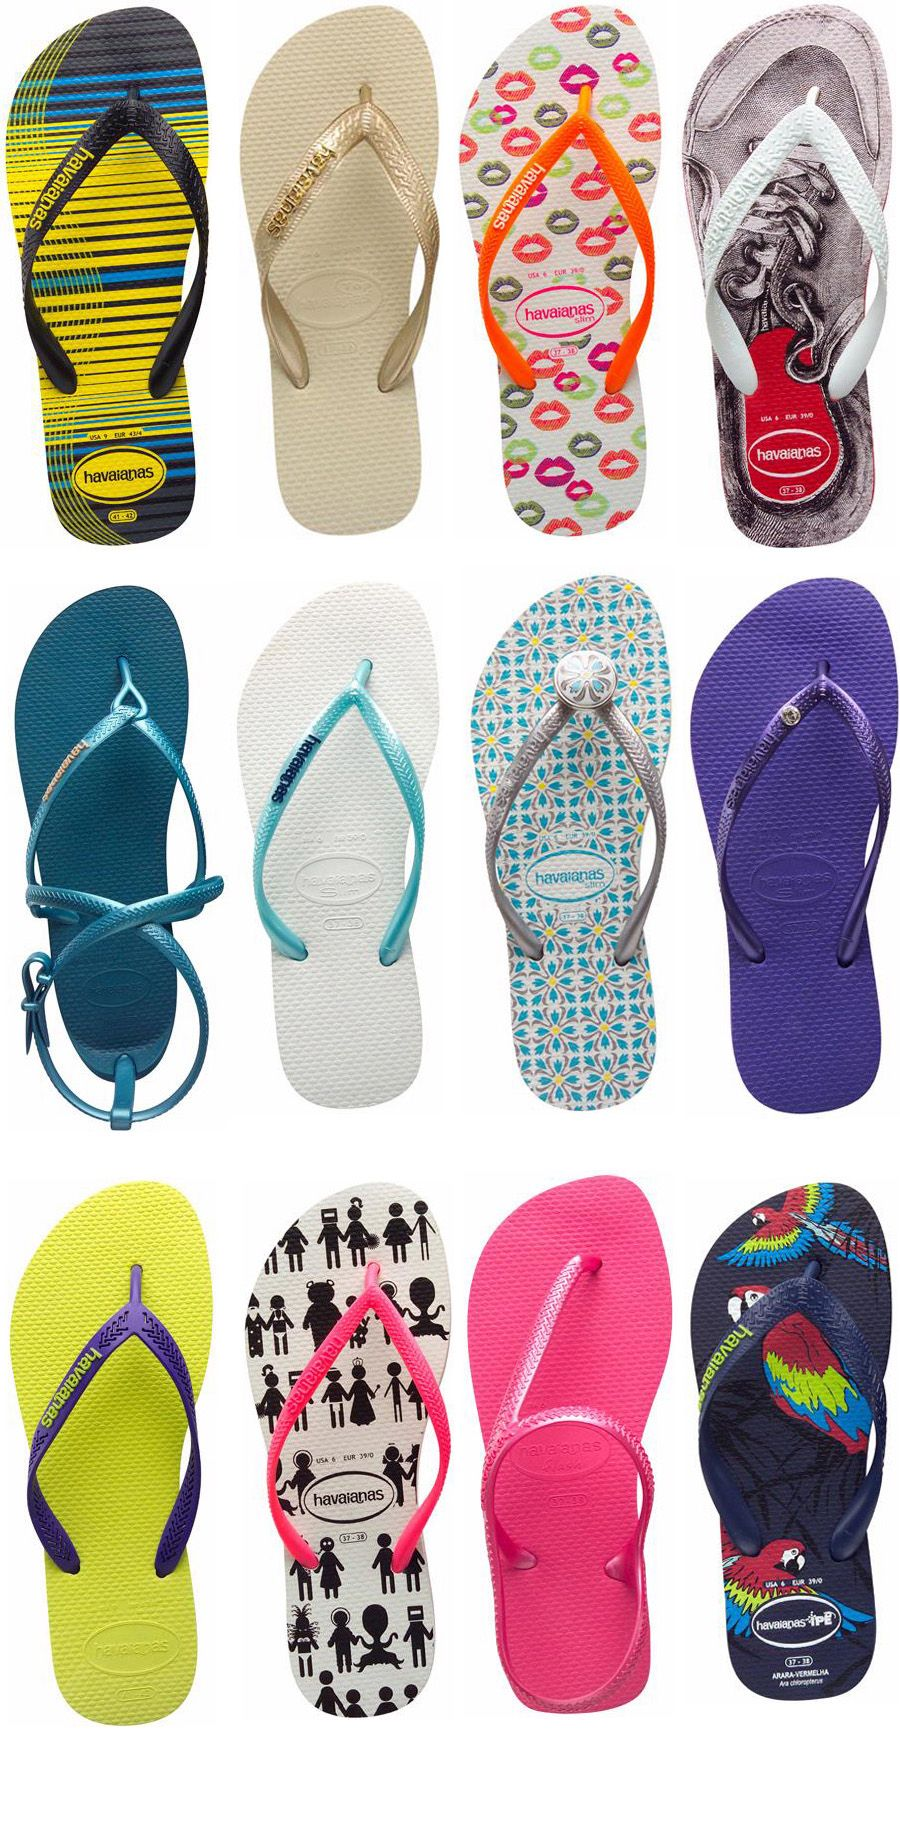 edf69c8c0206 Havaianas  3 Used to have numerous pairs back in Brazil